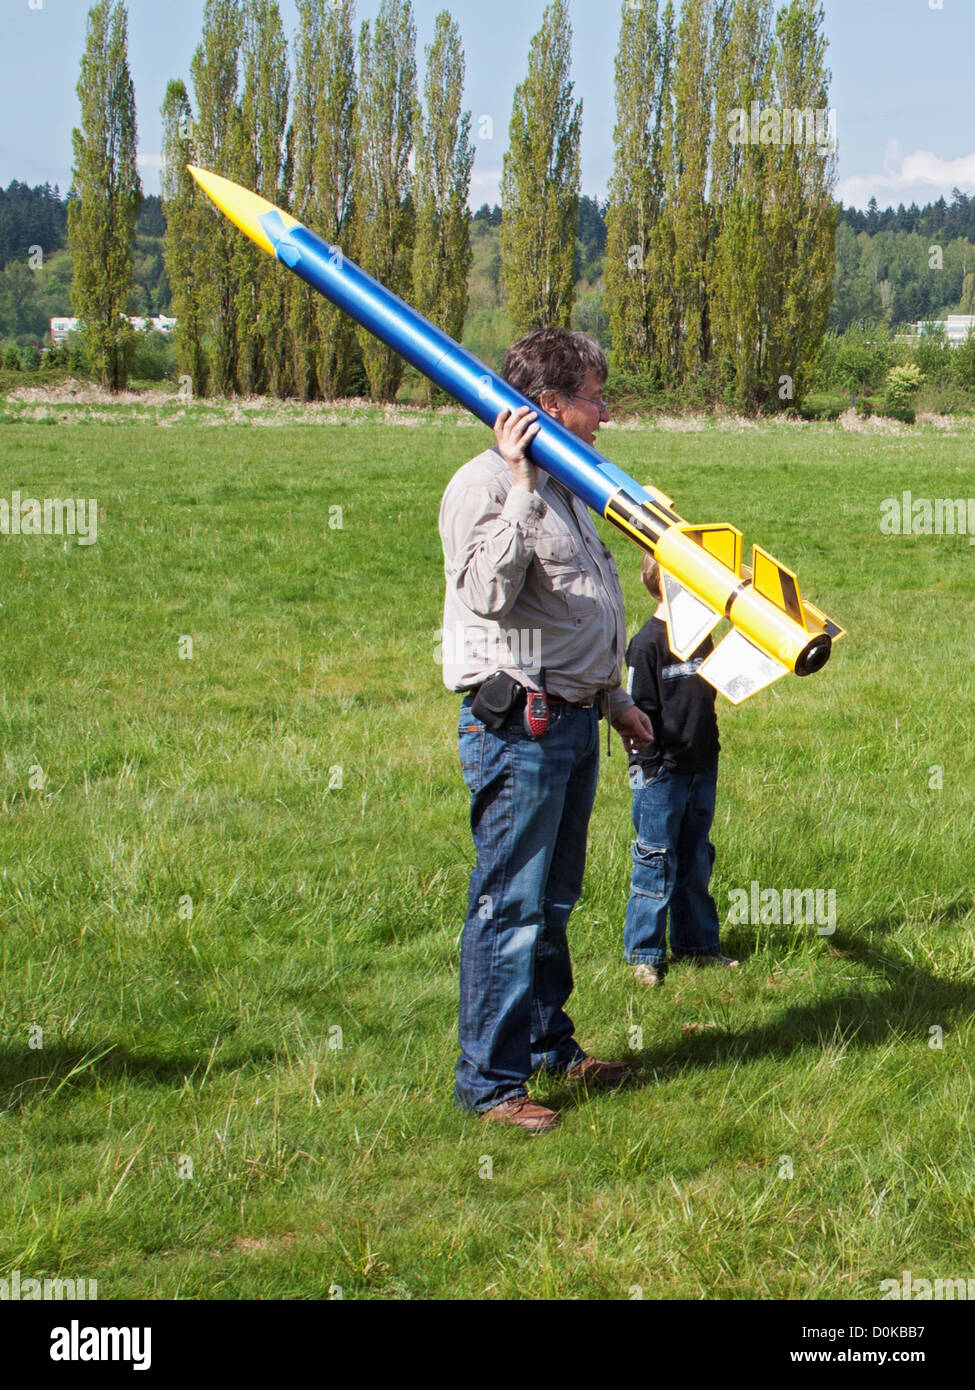 A man with a large model rocket at a rocketry launch event